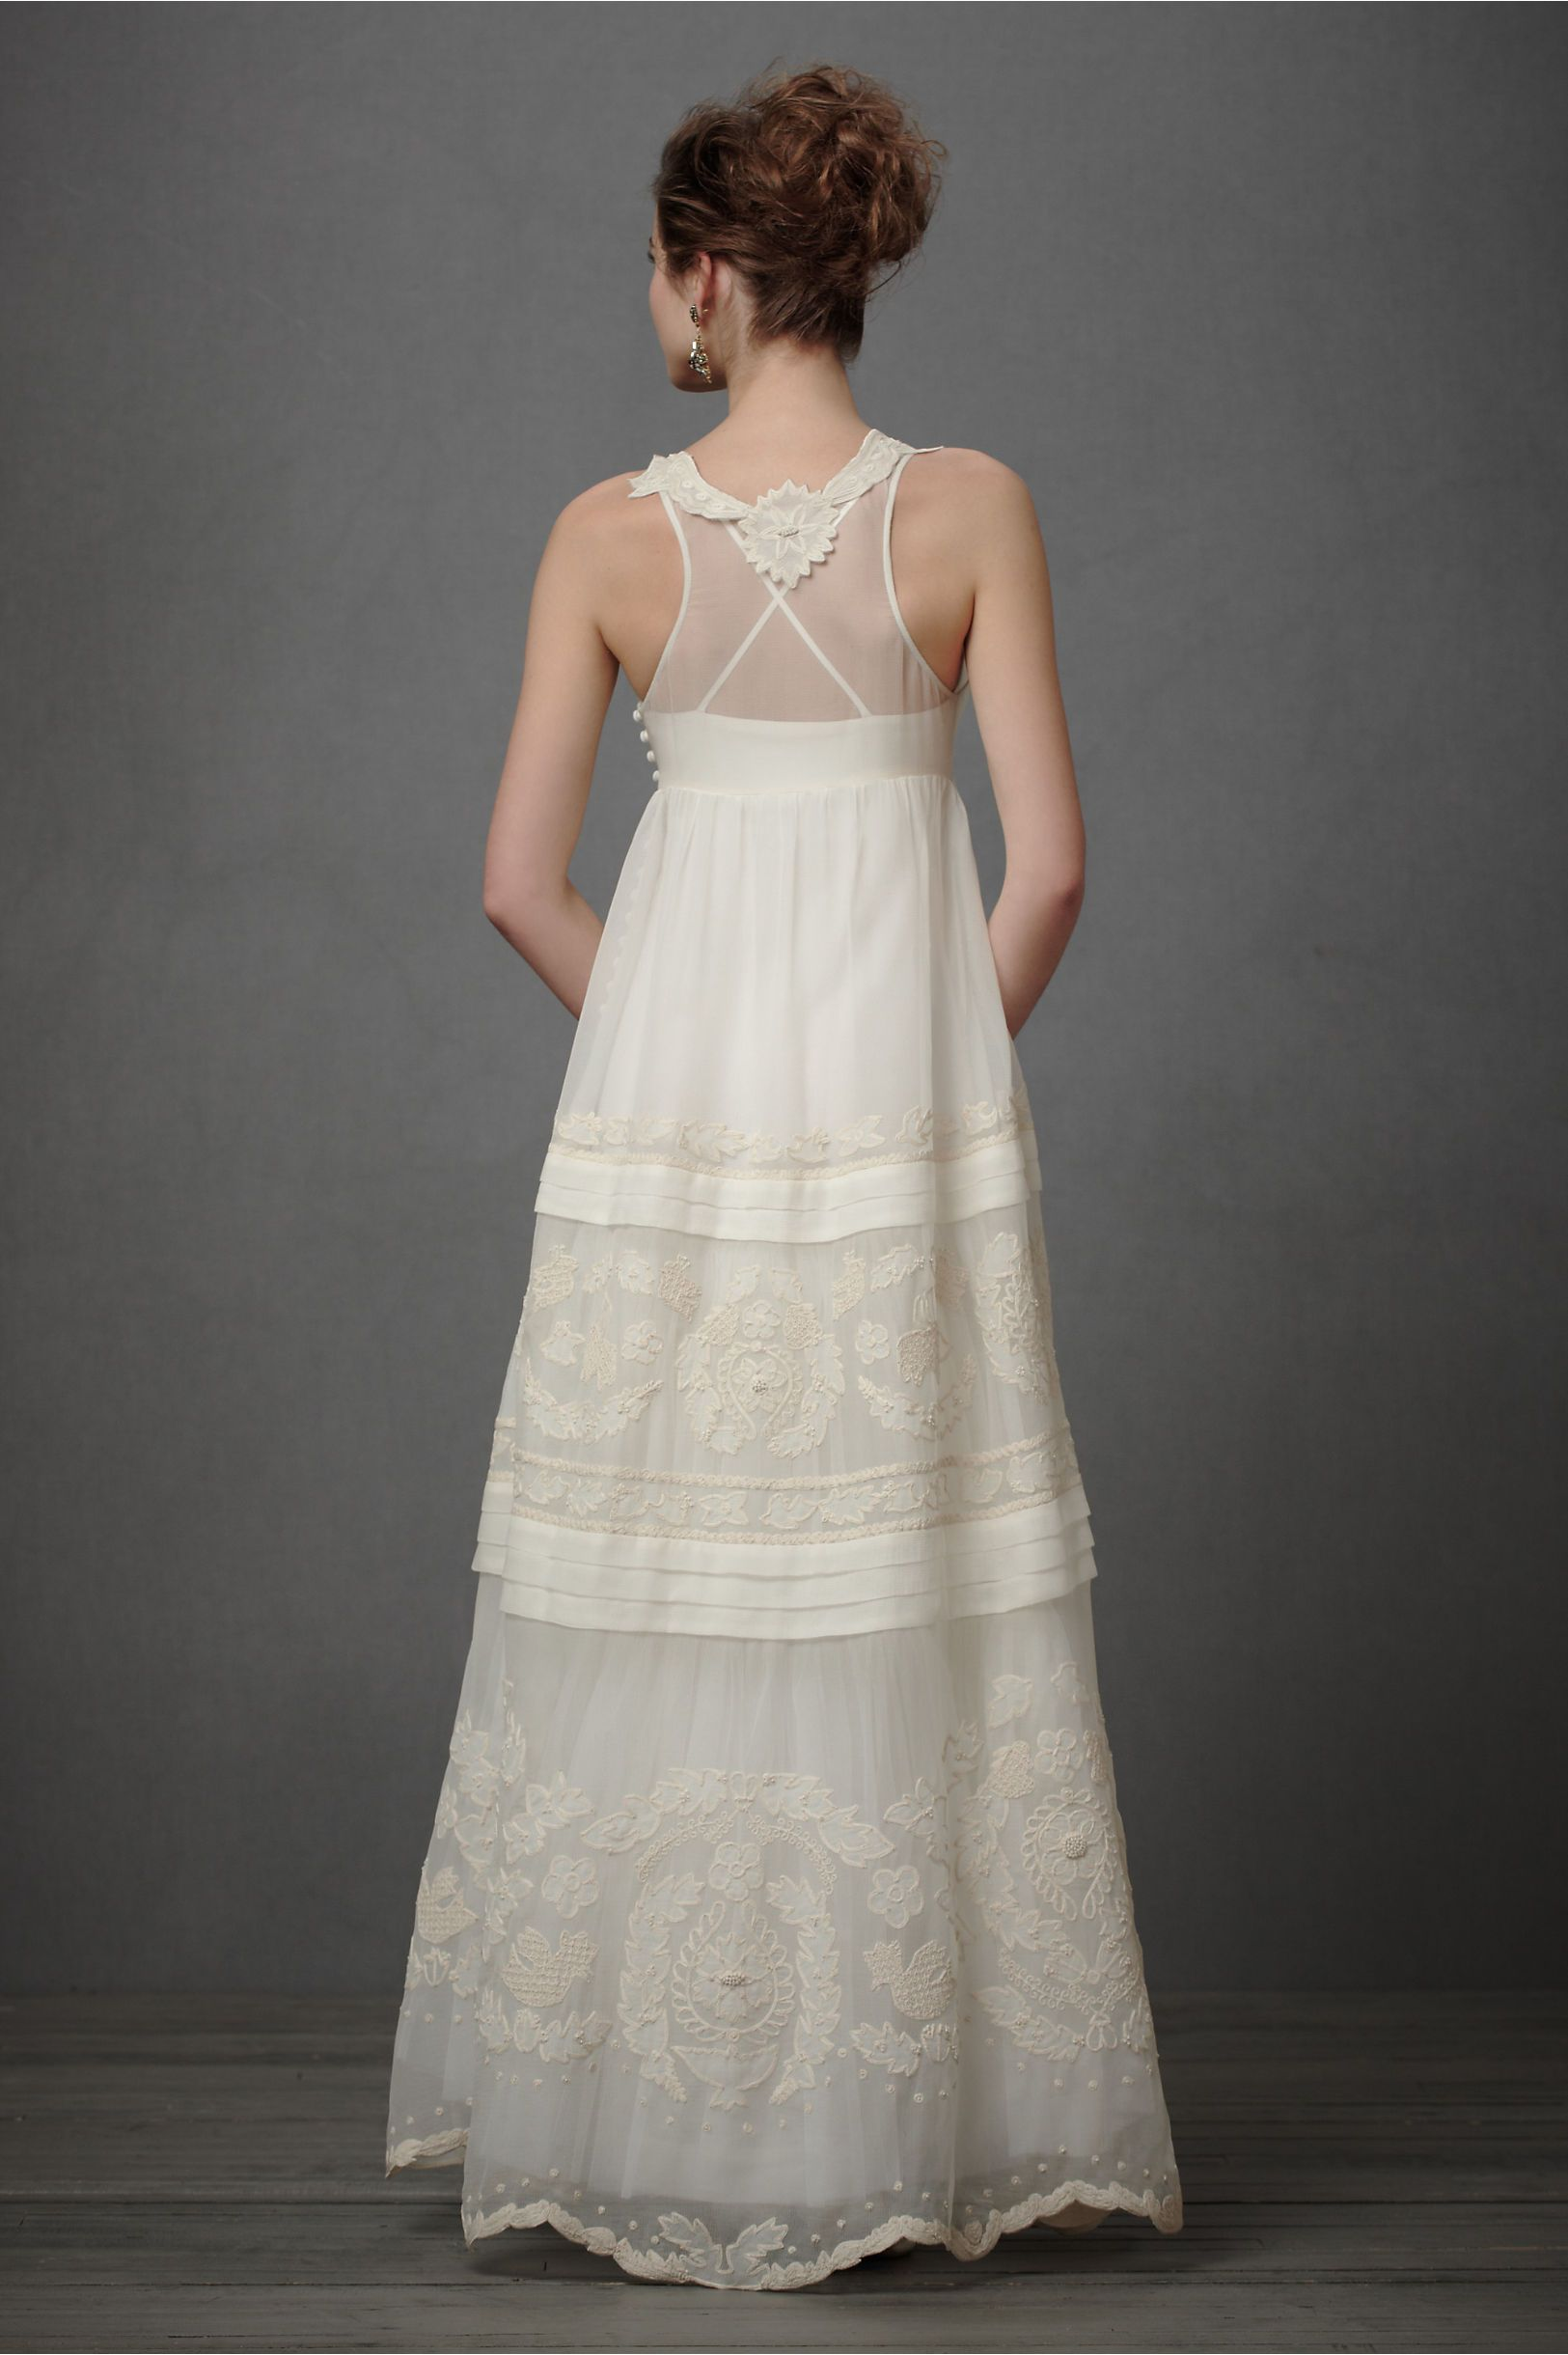 Nicosia gardens gown in shop the bride wedding dresses at bhldn wedding dress ombrellifo Gallery